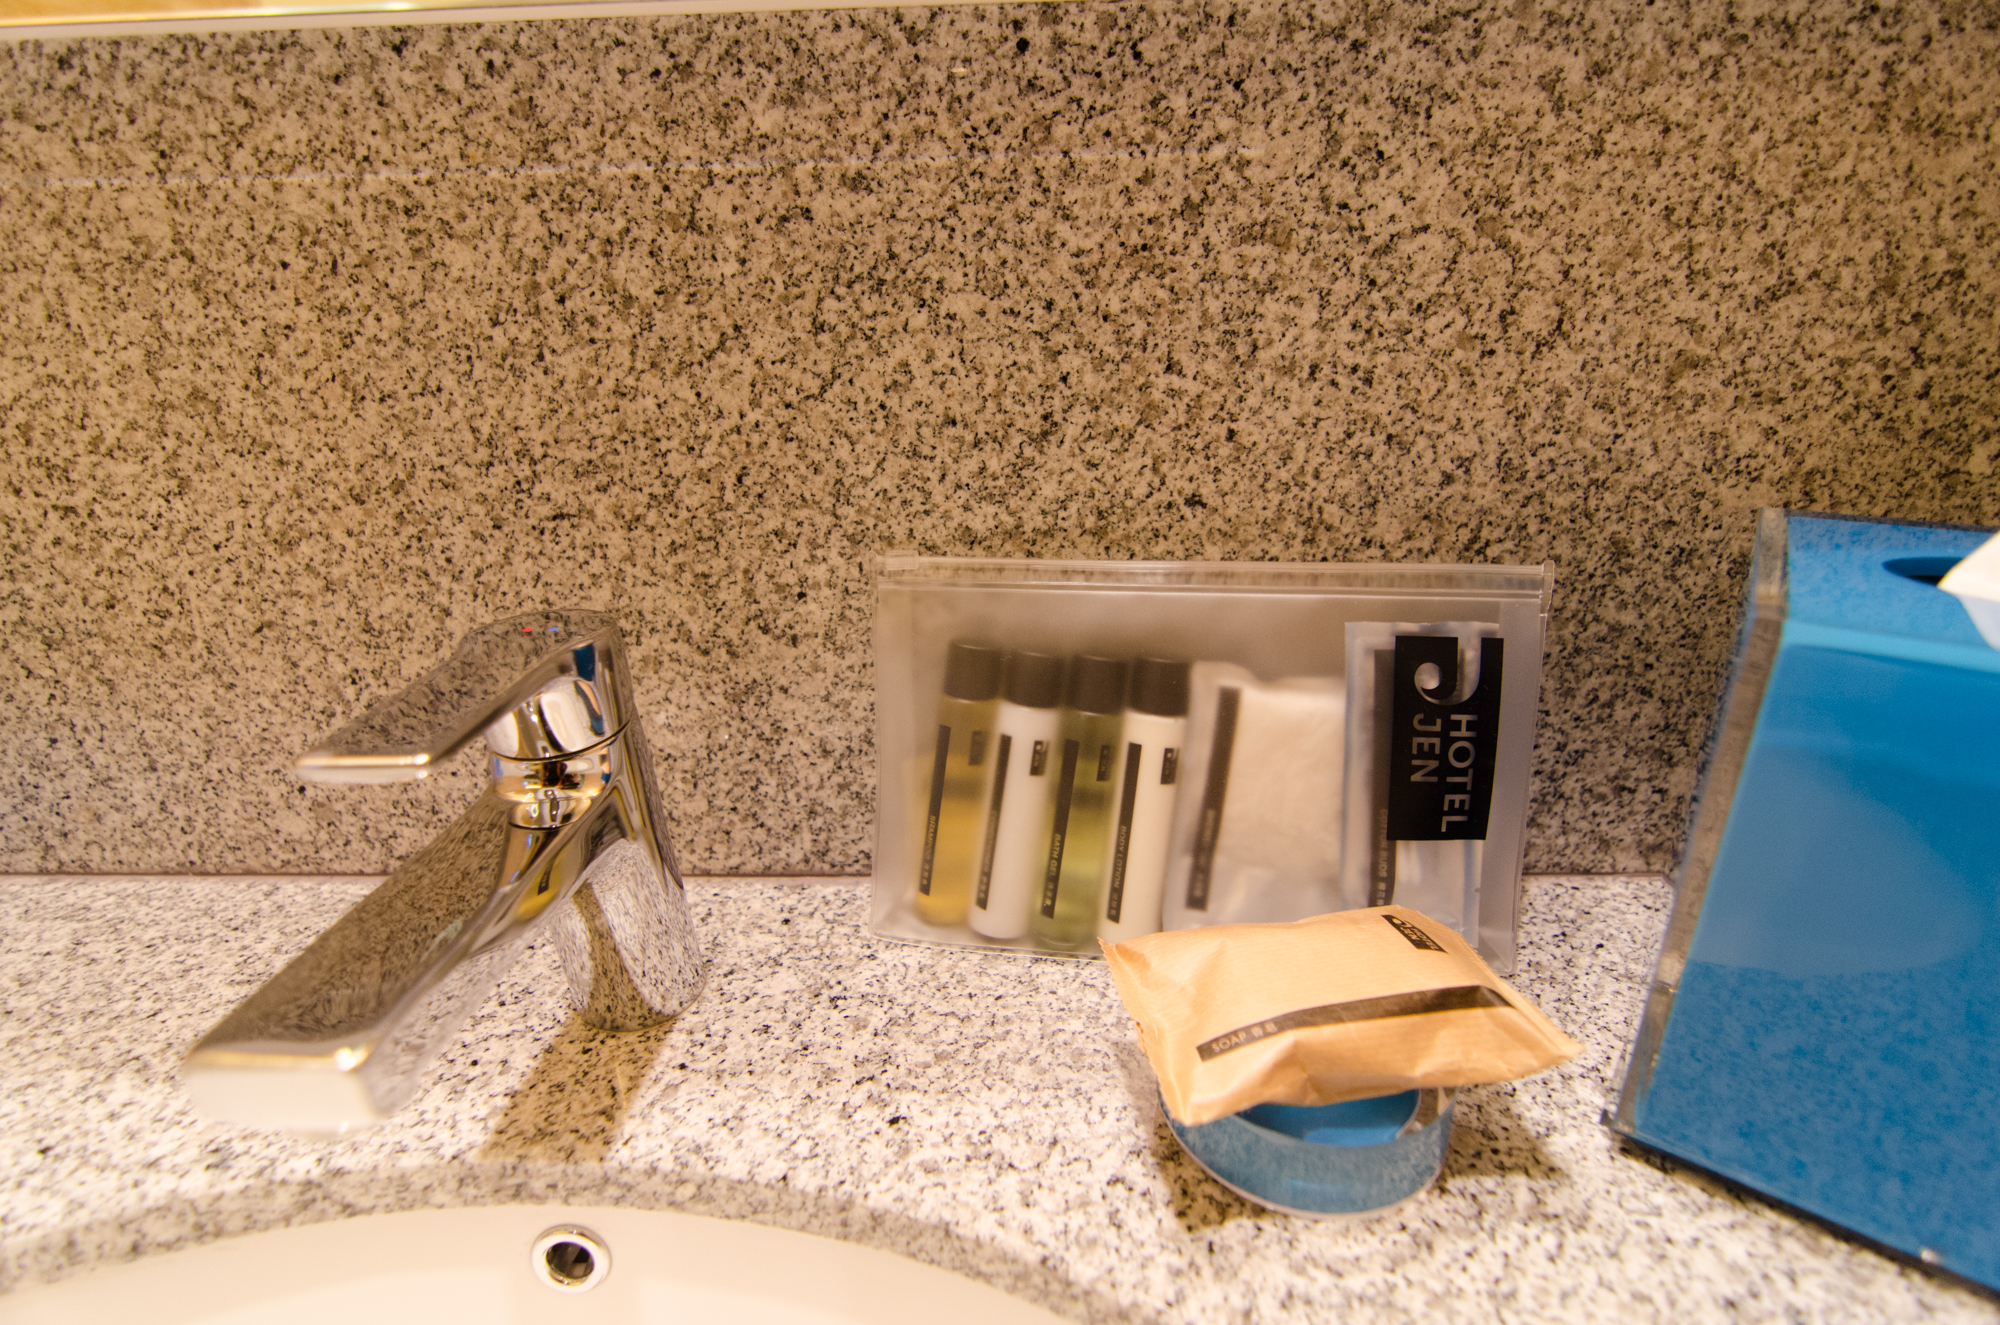 Amenities Provided in Rooms